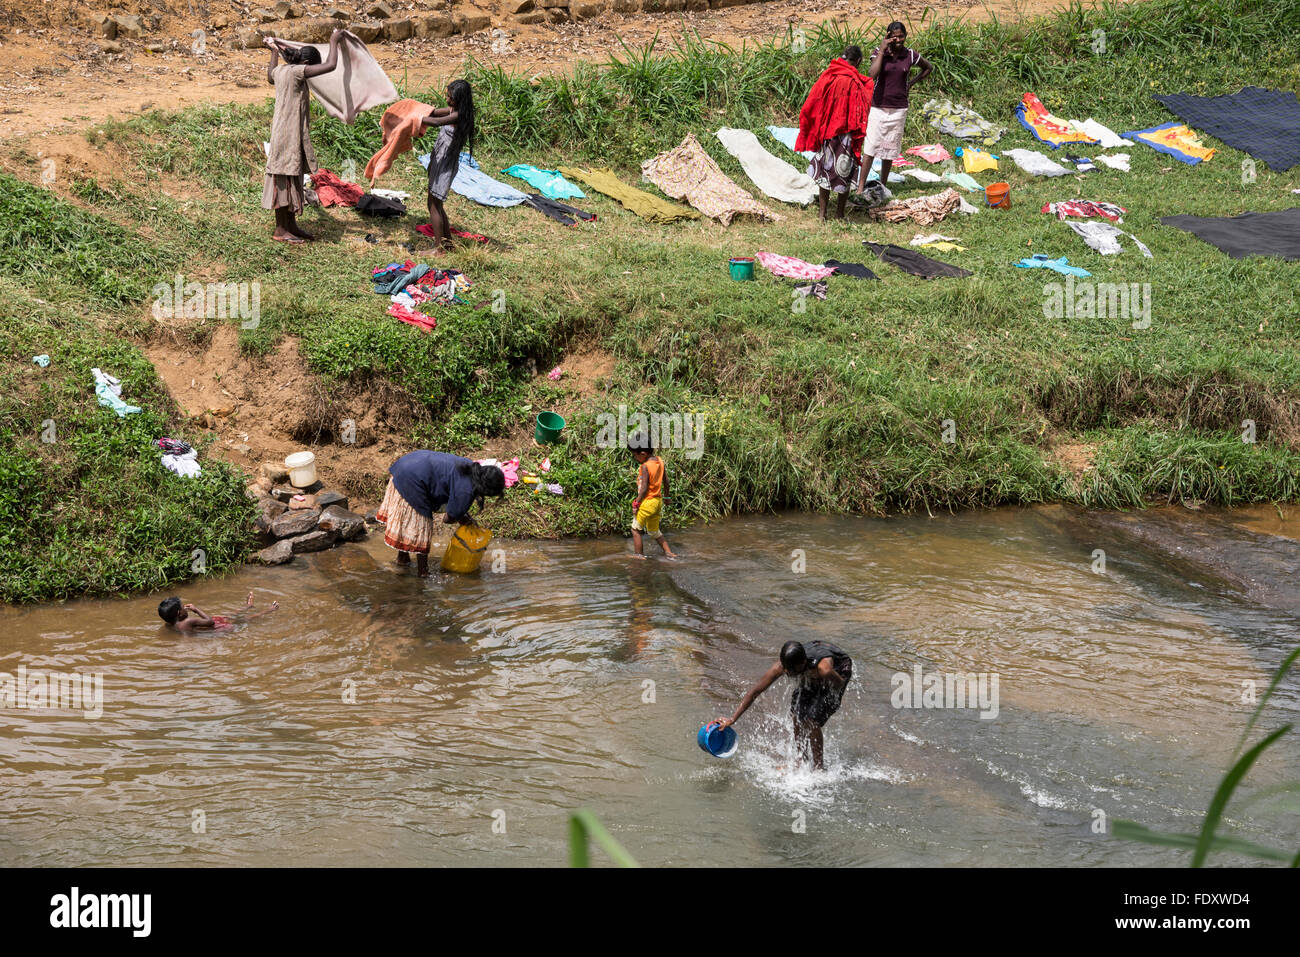 local women bathing and washing in a river near their